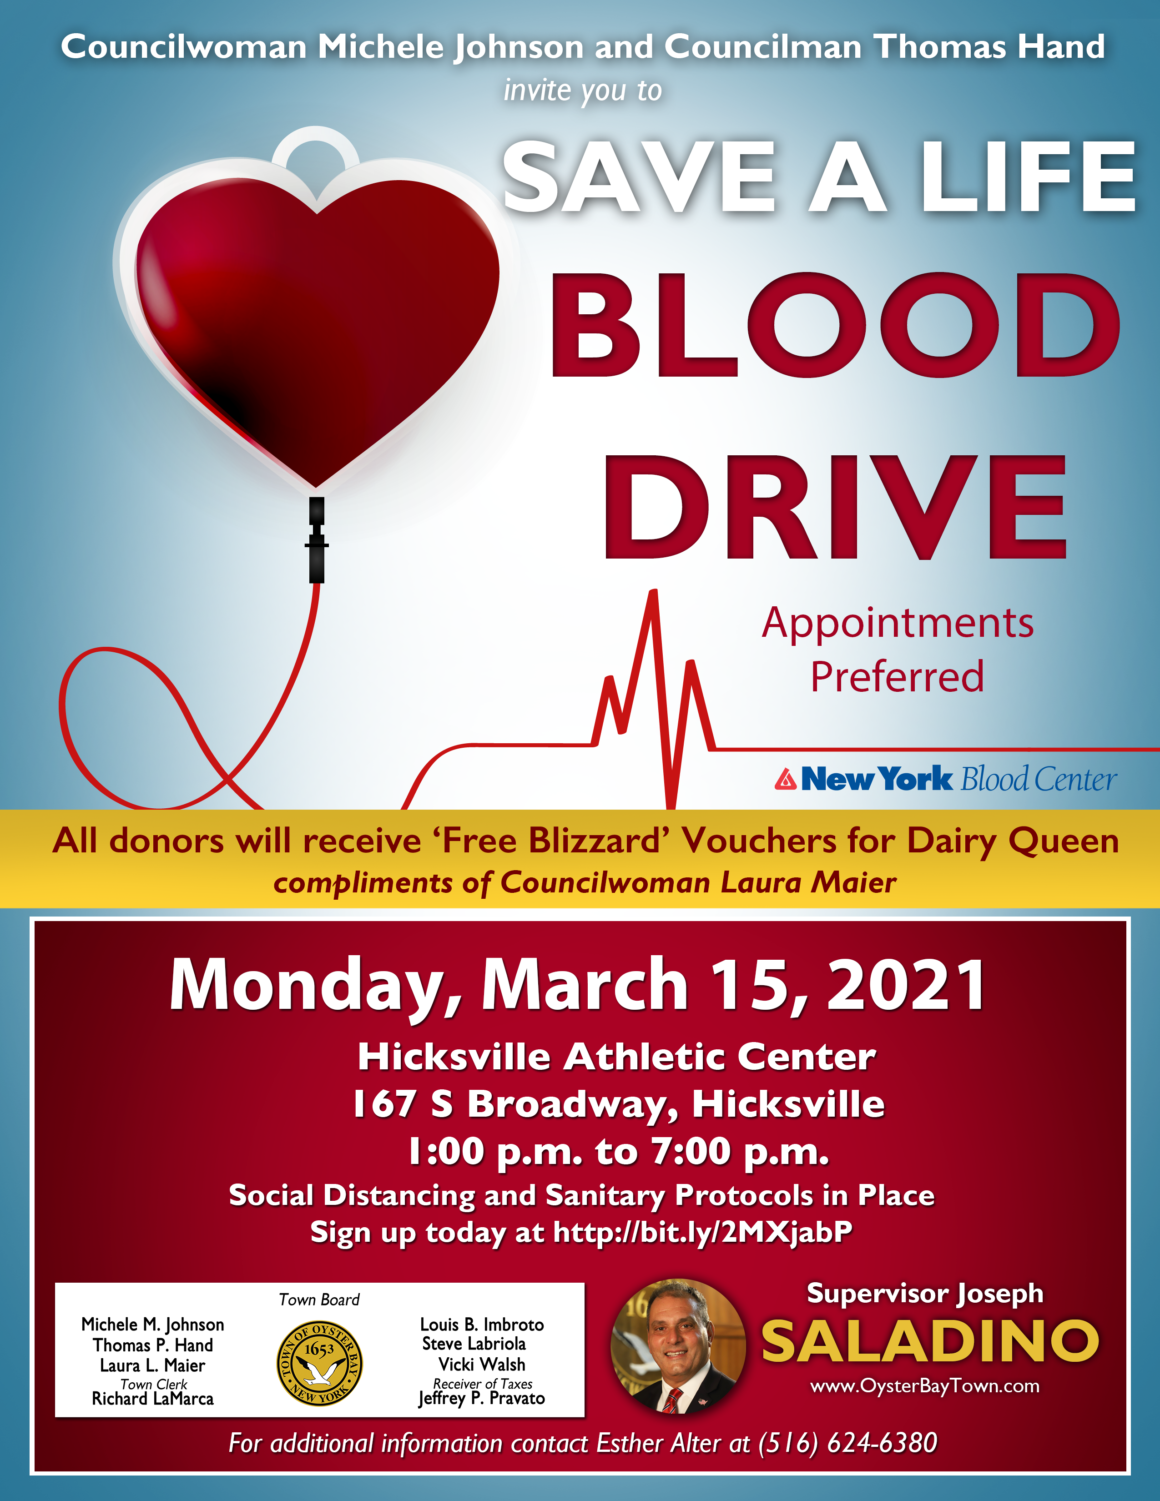 Residents Encouraged to Donate Blood March 15th in Hicksville